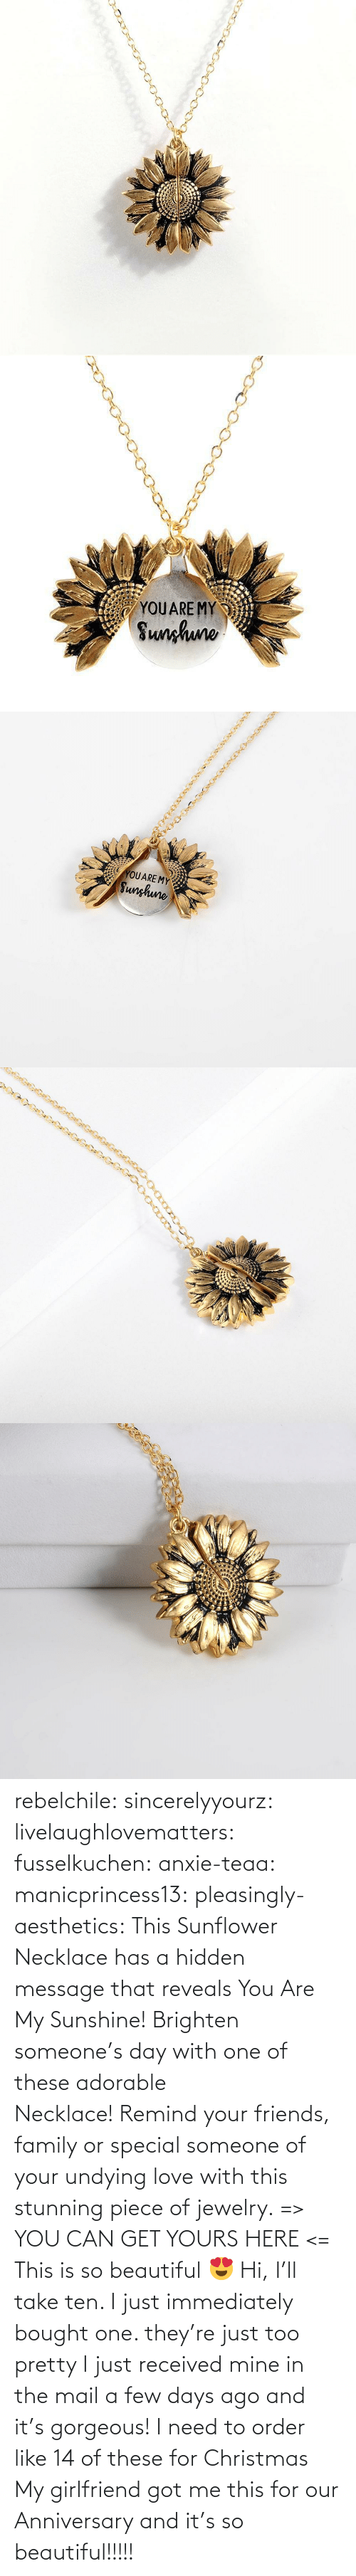 Brighten: YOUARE MY  Sunhuno   YOUARE MY  Sunghune rebelchile:  sincerelyyourz:  livelaughlovematters:  fusselkuchen:  anxie-teaa:   manicprincess13:   pleasingly-aesthetics:  This Sunflower Necklace has a hidden message that reveals You Are My Sunshine! Brighten someone's day with one of these adorable Necklace! Remind your friends, family or special someone of your undying love with this stunning piece of jewelry. => YOU CAN GET YOURS HERE <=   This is so beautiful 😍    Hi, I'll take ten.    I just immediately bought one. they're just too pretty   I just received mine in the mail a few days ago and it's gorgeous!   I need to order like 14 of these for Christmas    My girlfriend got me this for our Anniversary and it's so beautiful!!!!!